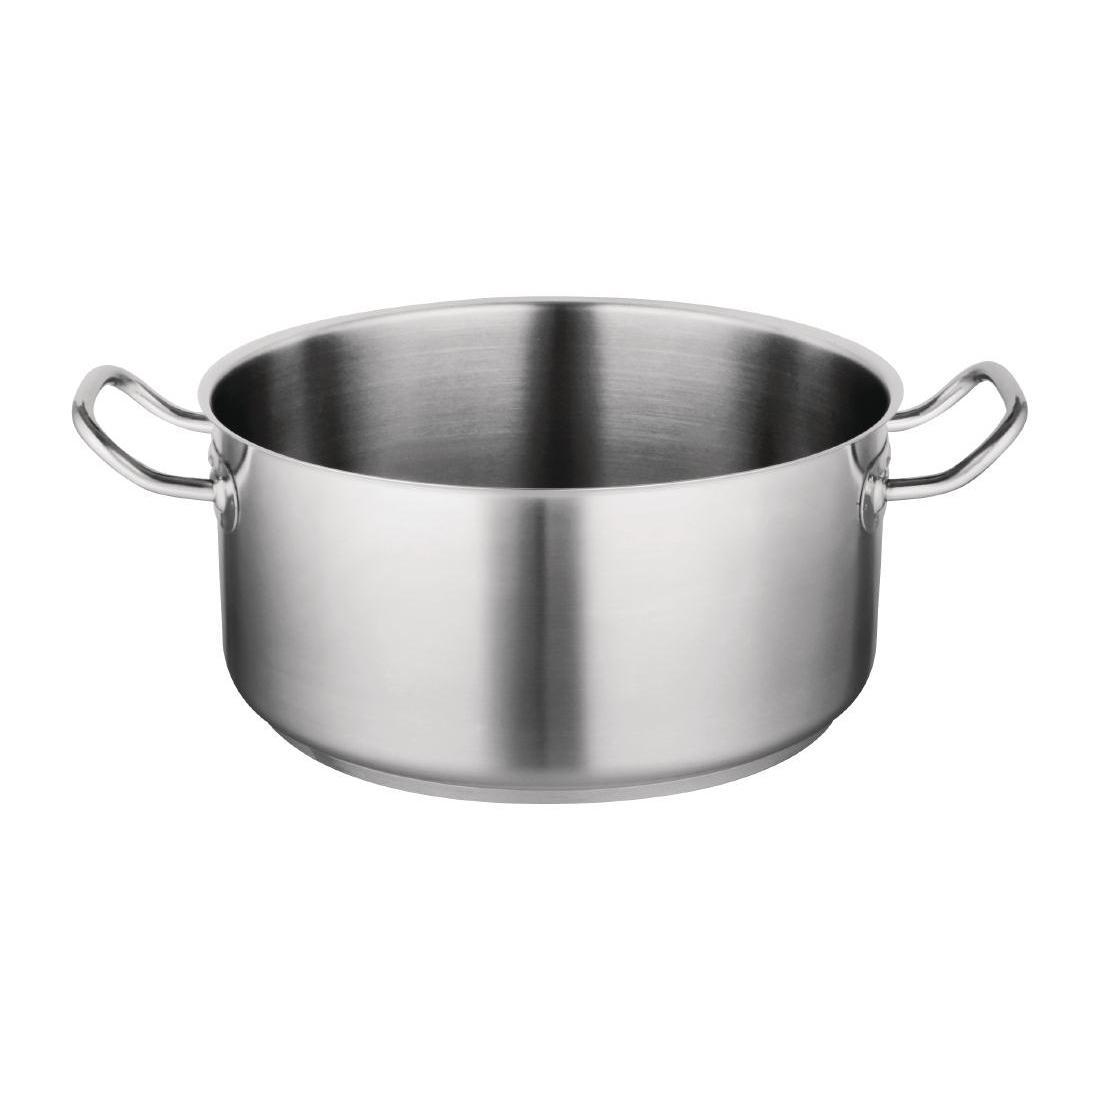 Vogue Casserole Pan 7.5Ltr - T177